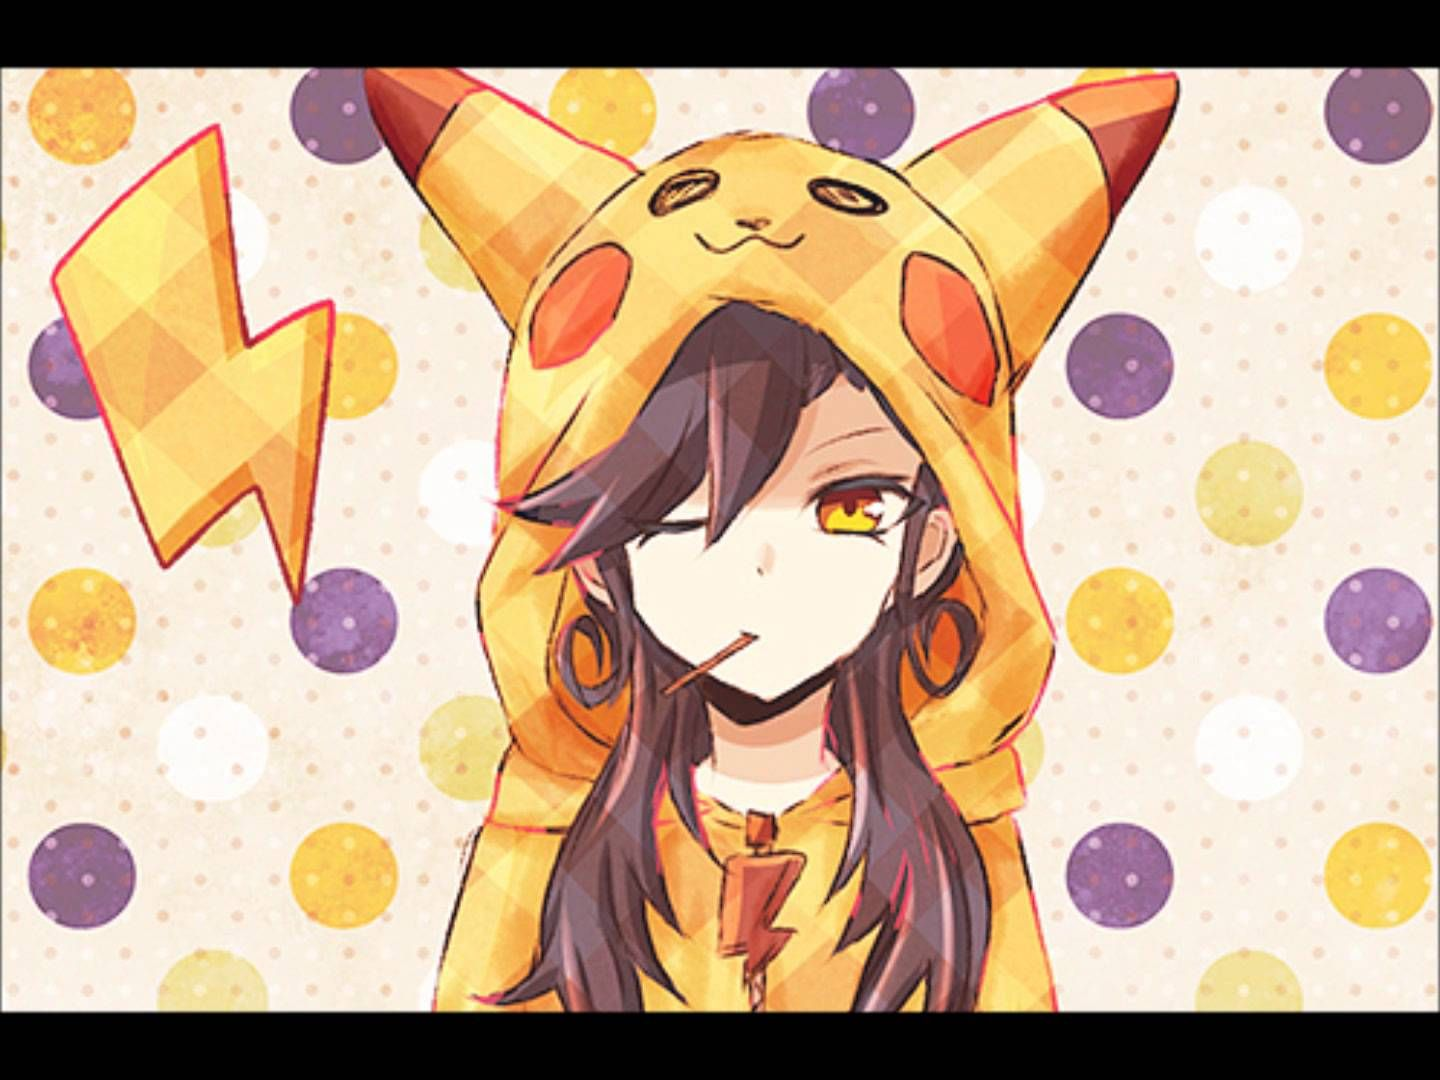 Iphone 5 Minecraft Wallpaper Nightcore Anime Girls Maxresdefault Jpg Pokemon